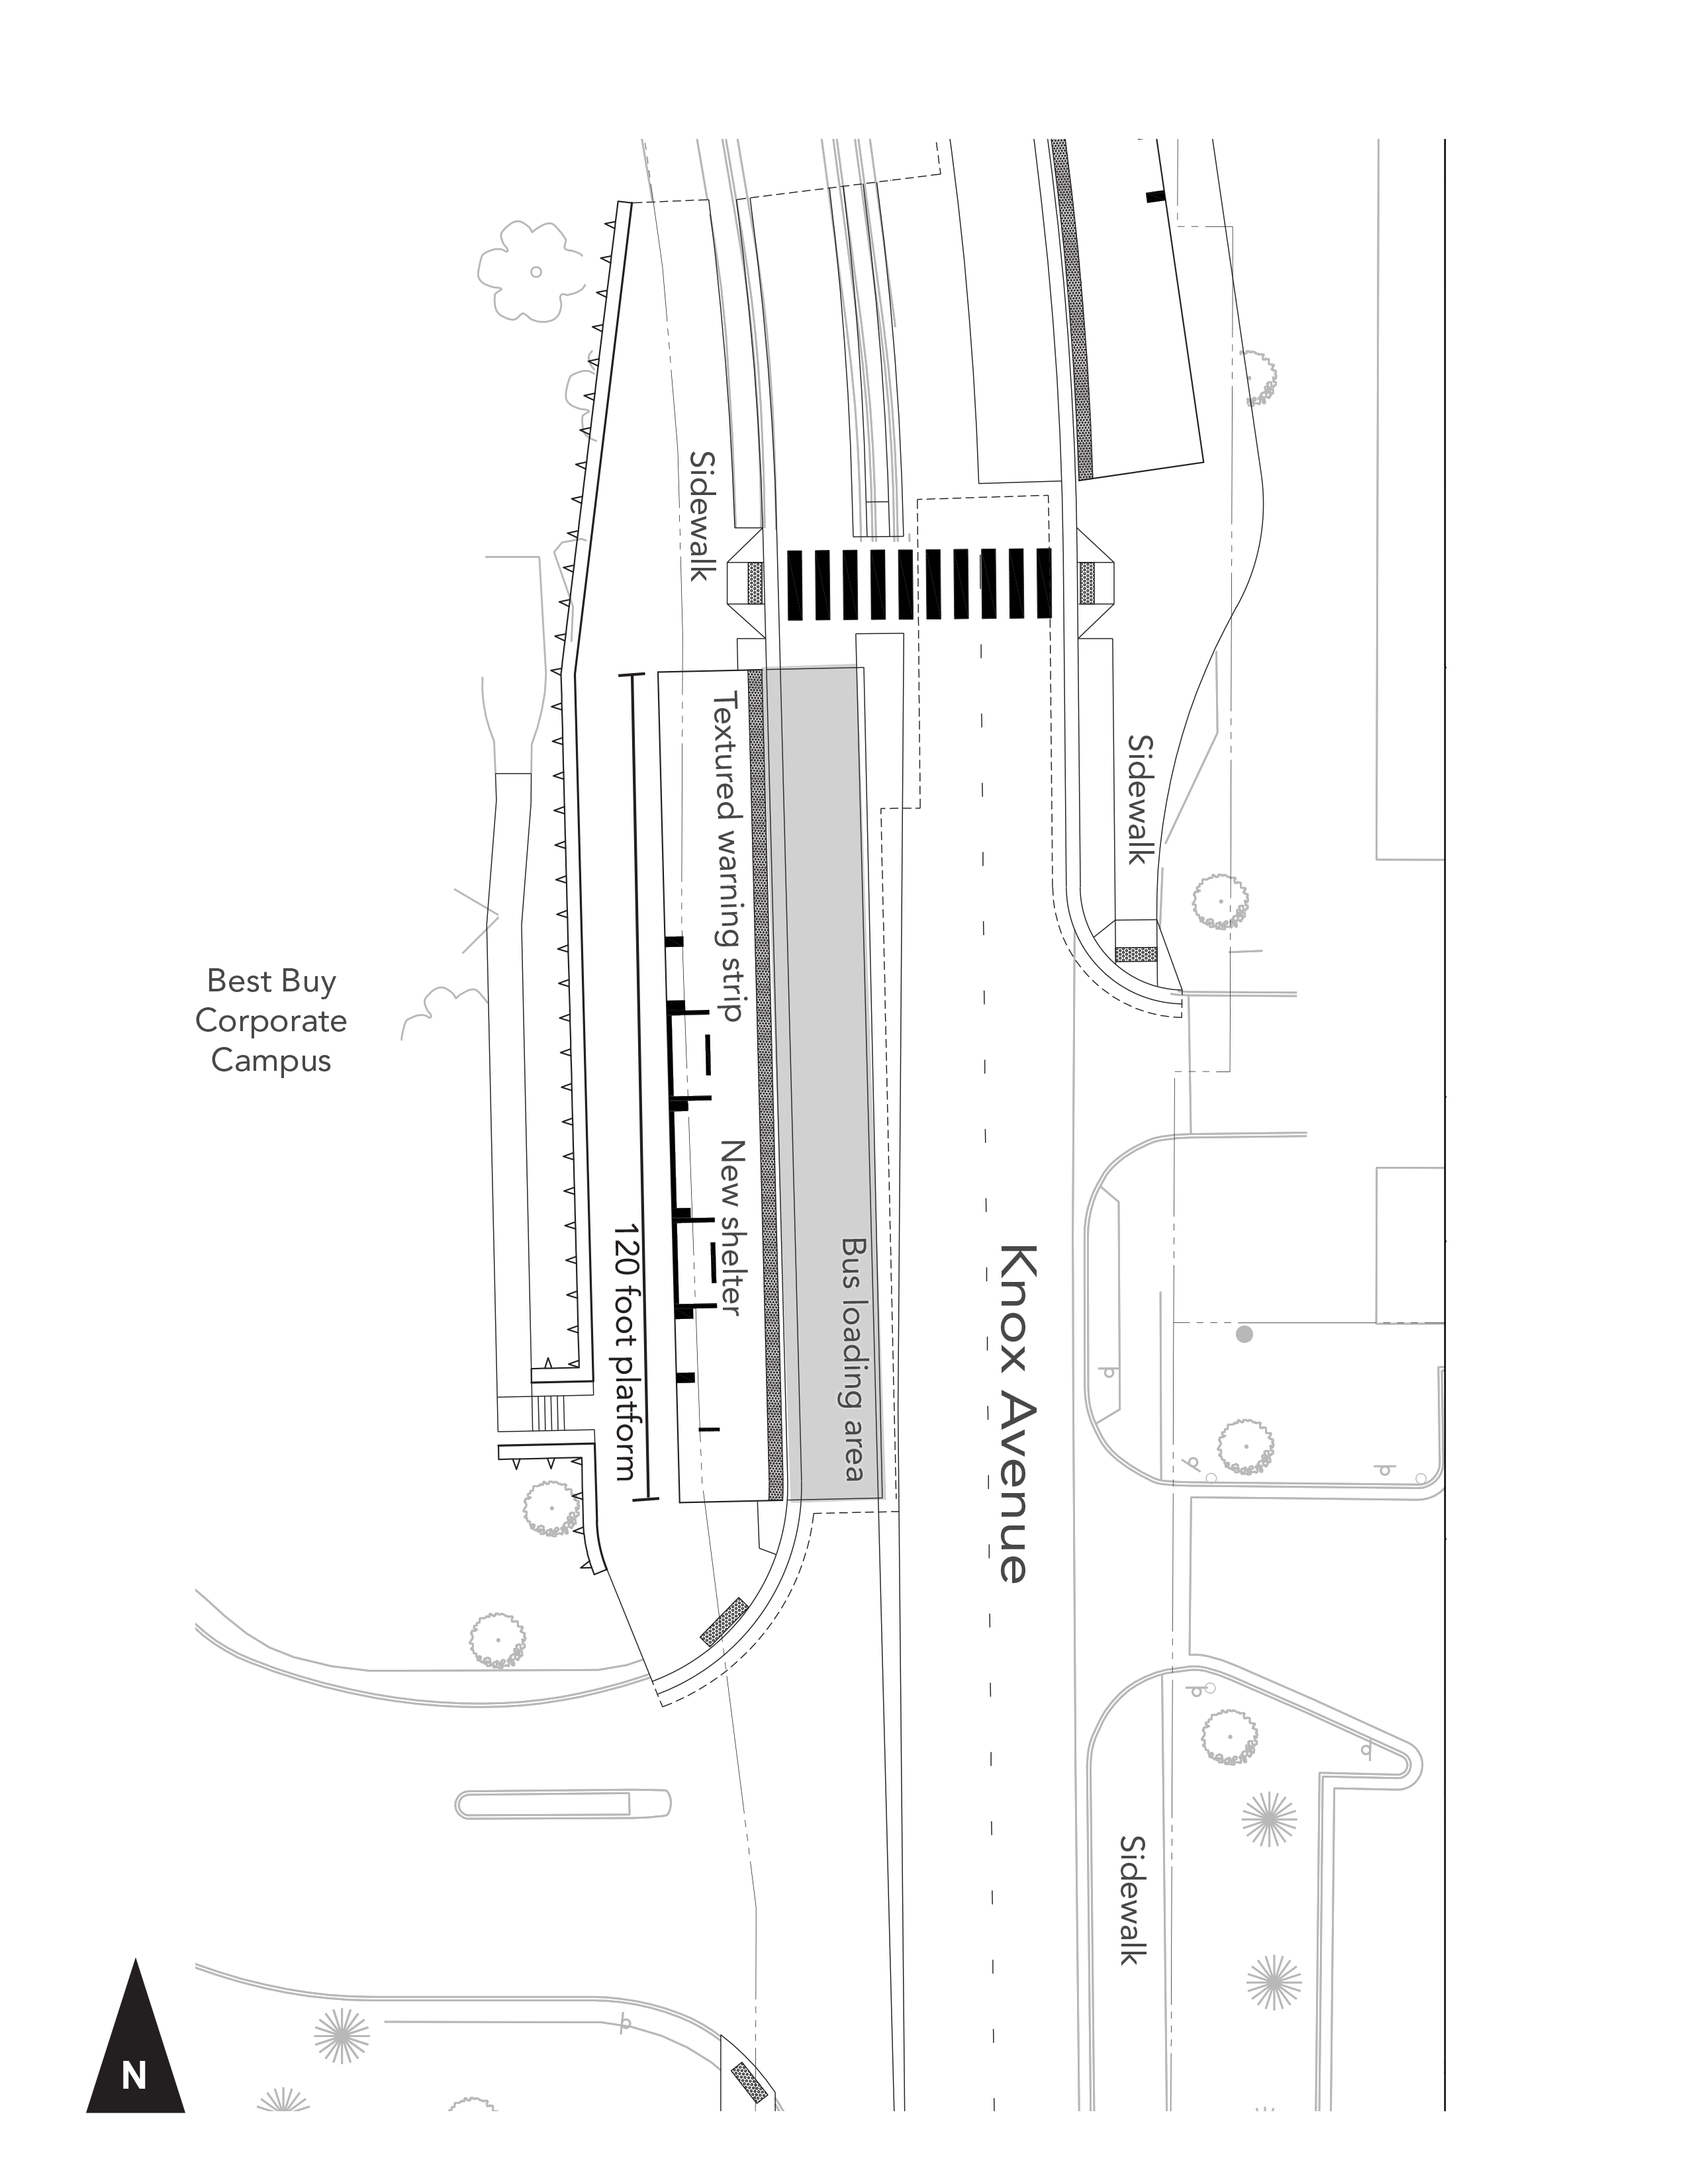 76th Street Station - Southbound - Site Plan